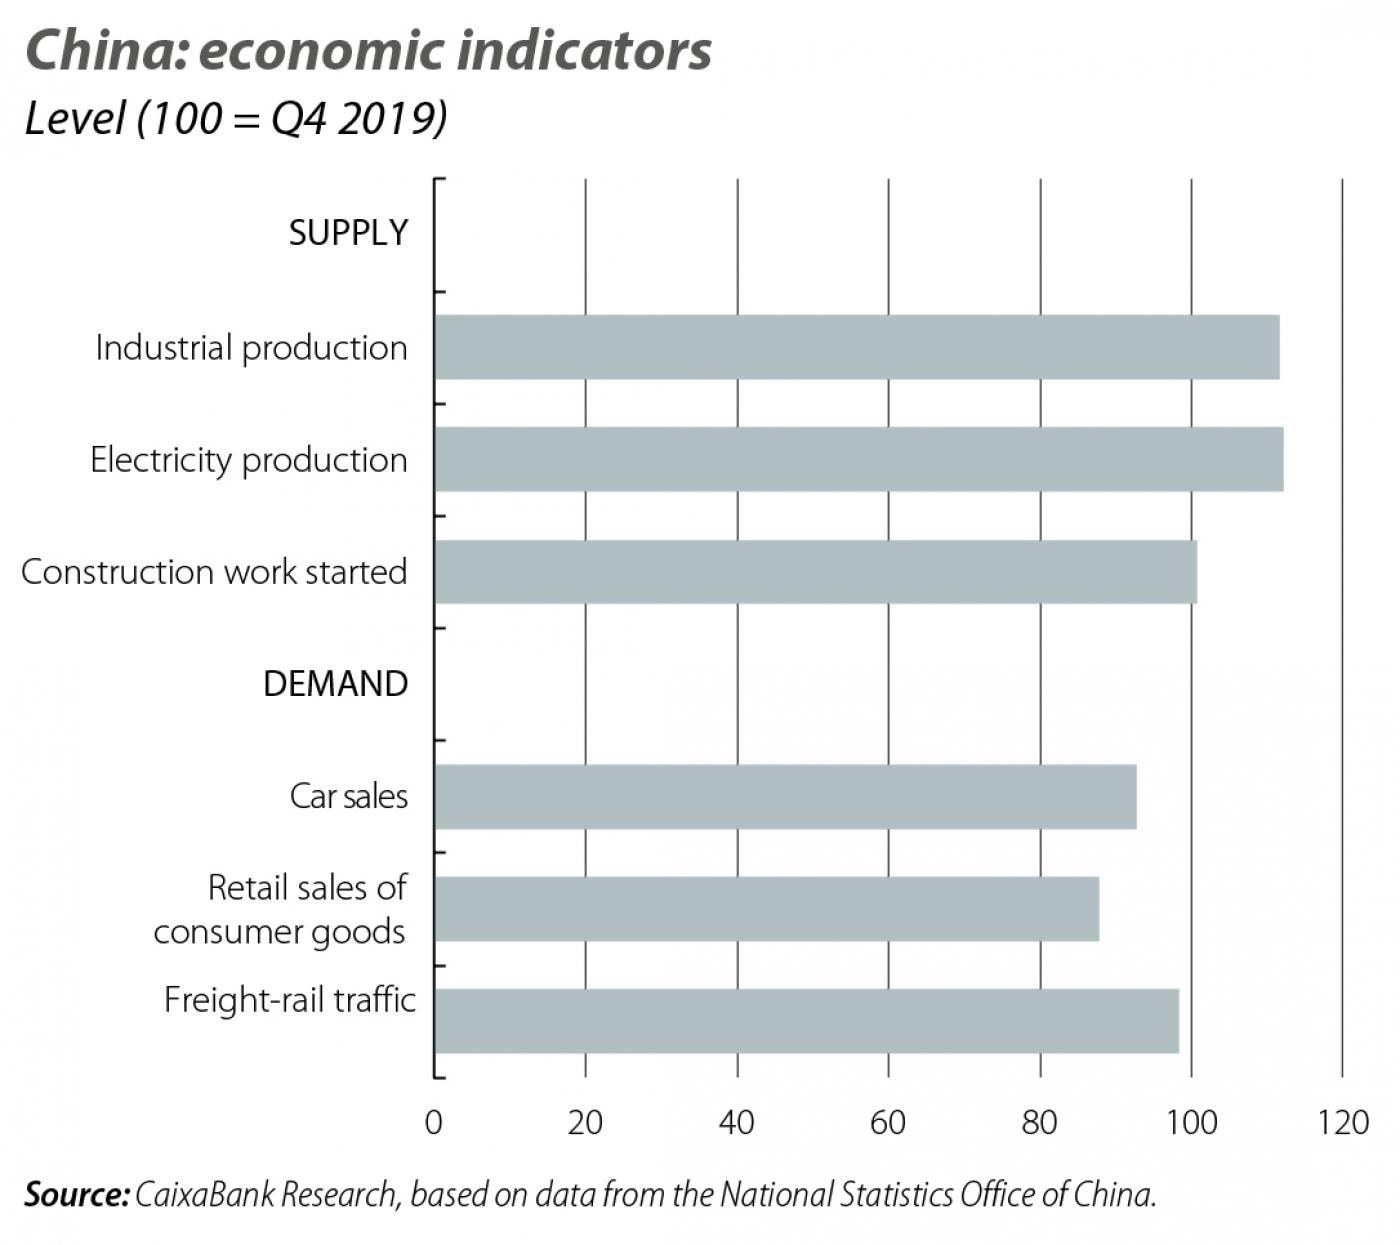 China: economic indicators